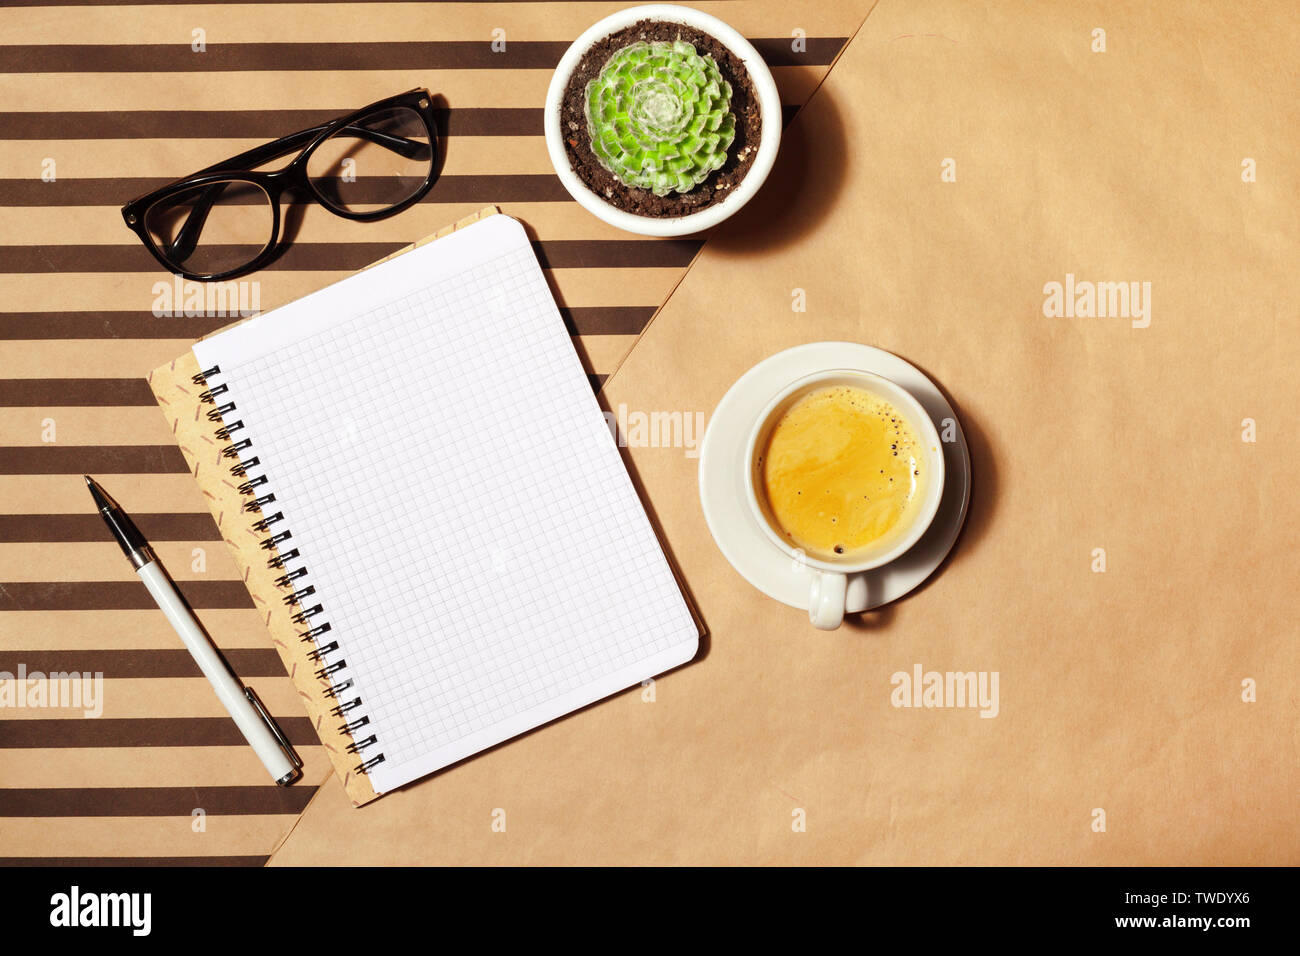 Blank notepad and coffee cup - Stock Image